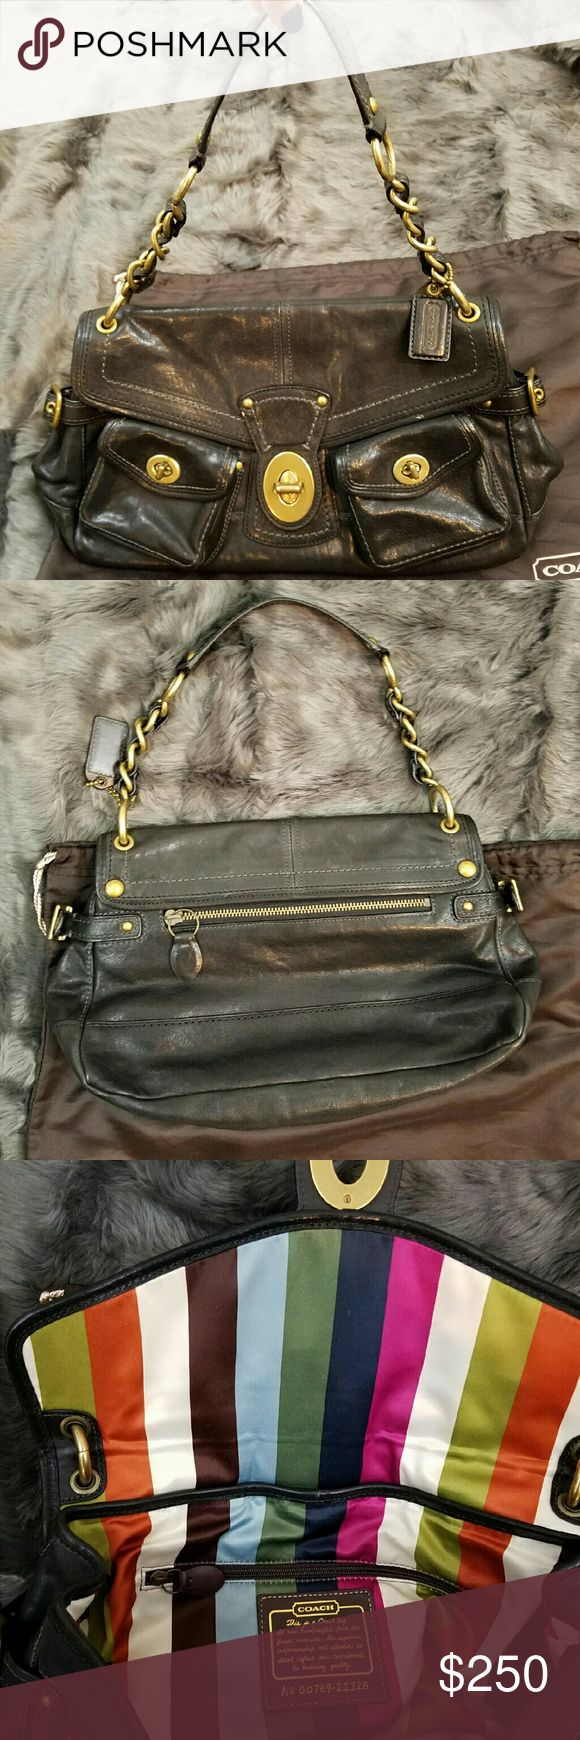 Rare Coach Legacy Leigh Satchel Excellent condition! I only carried it a few times for special occasions. Comes with dust bag. Coach Bags Satchels